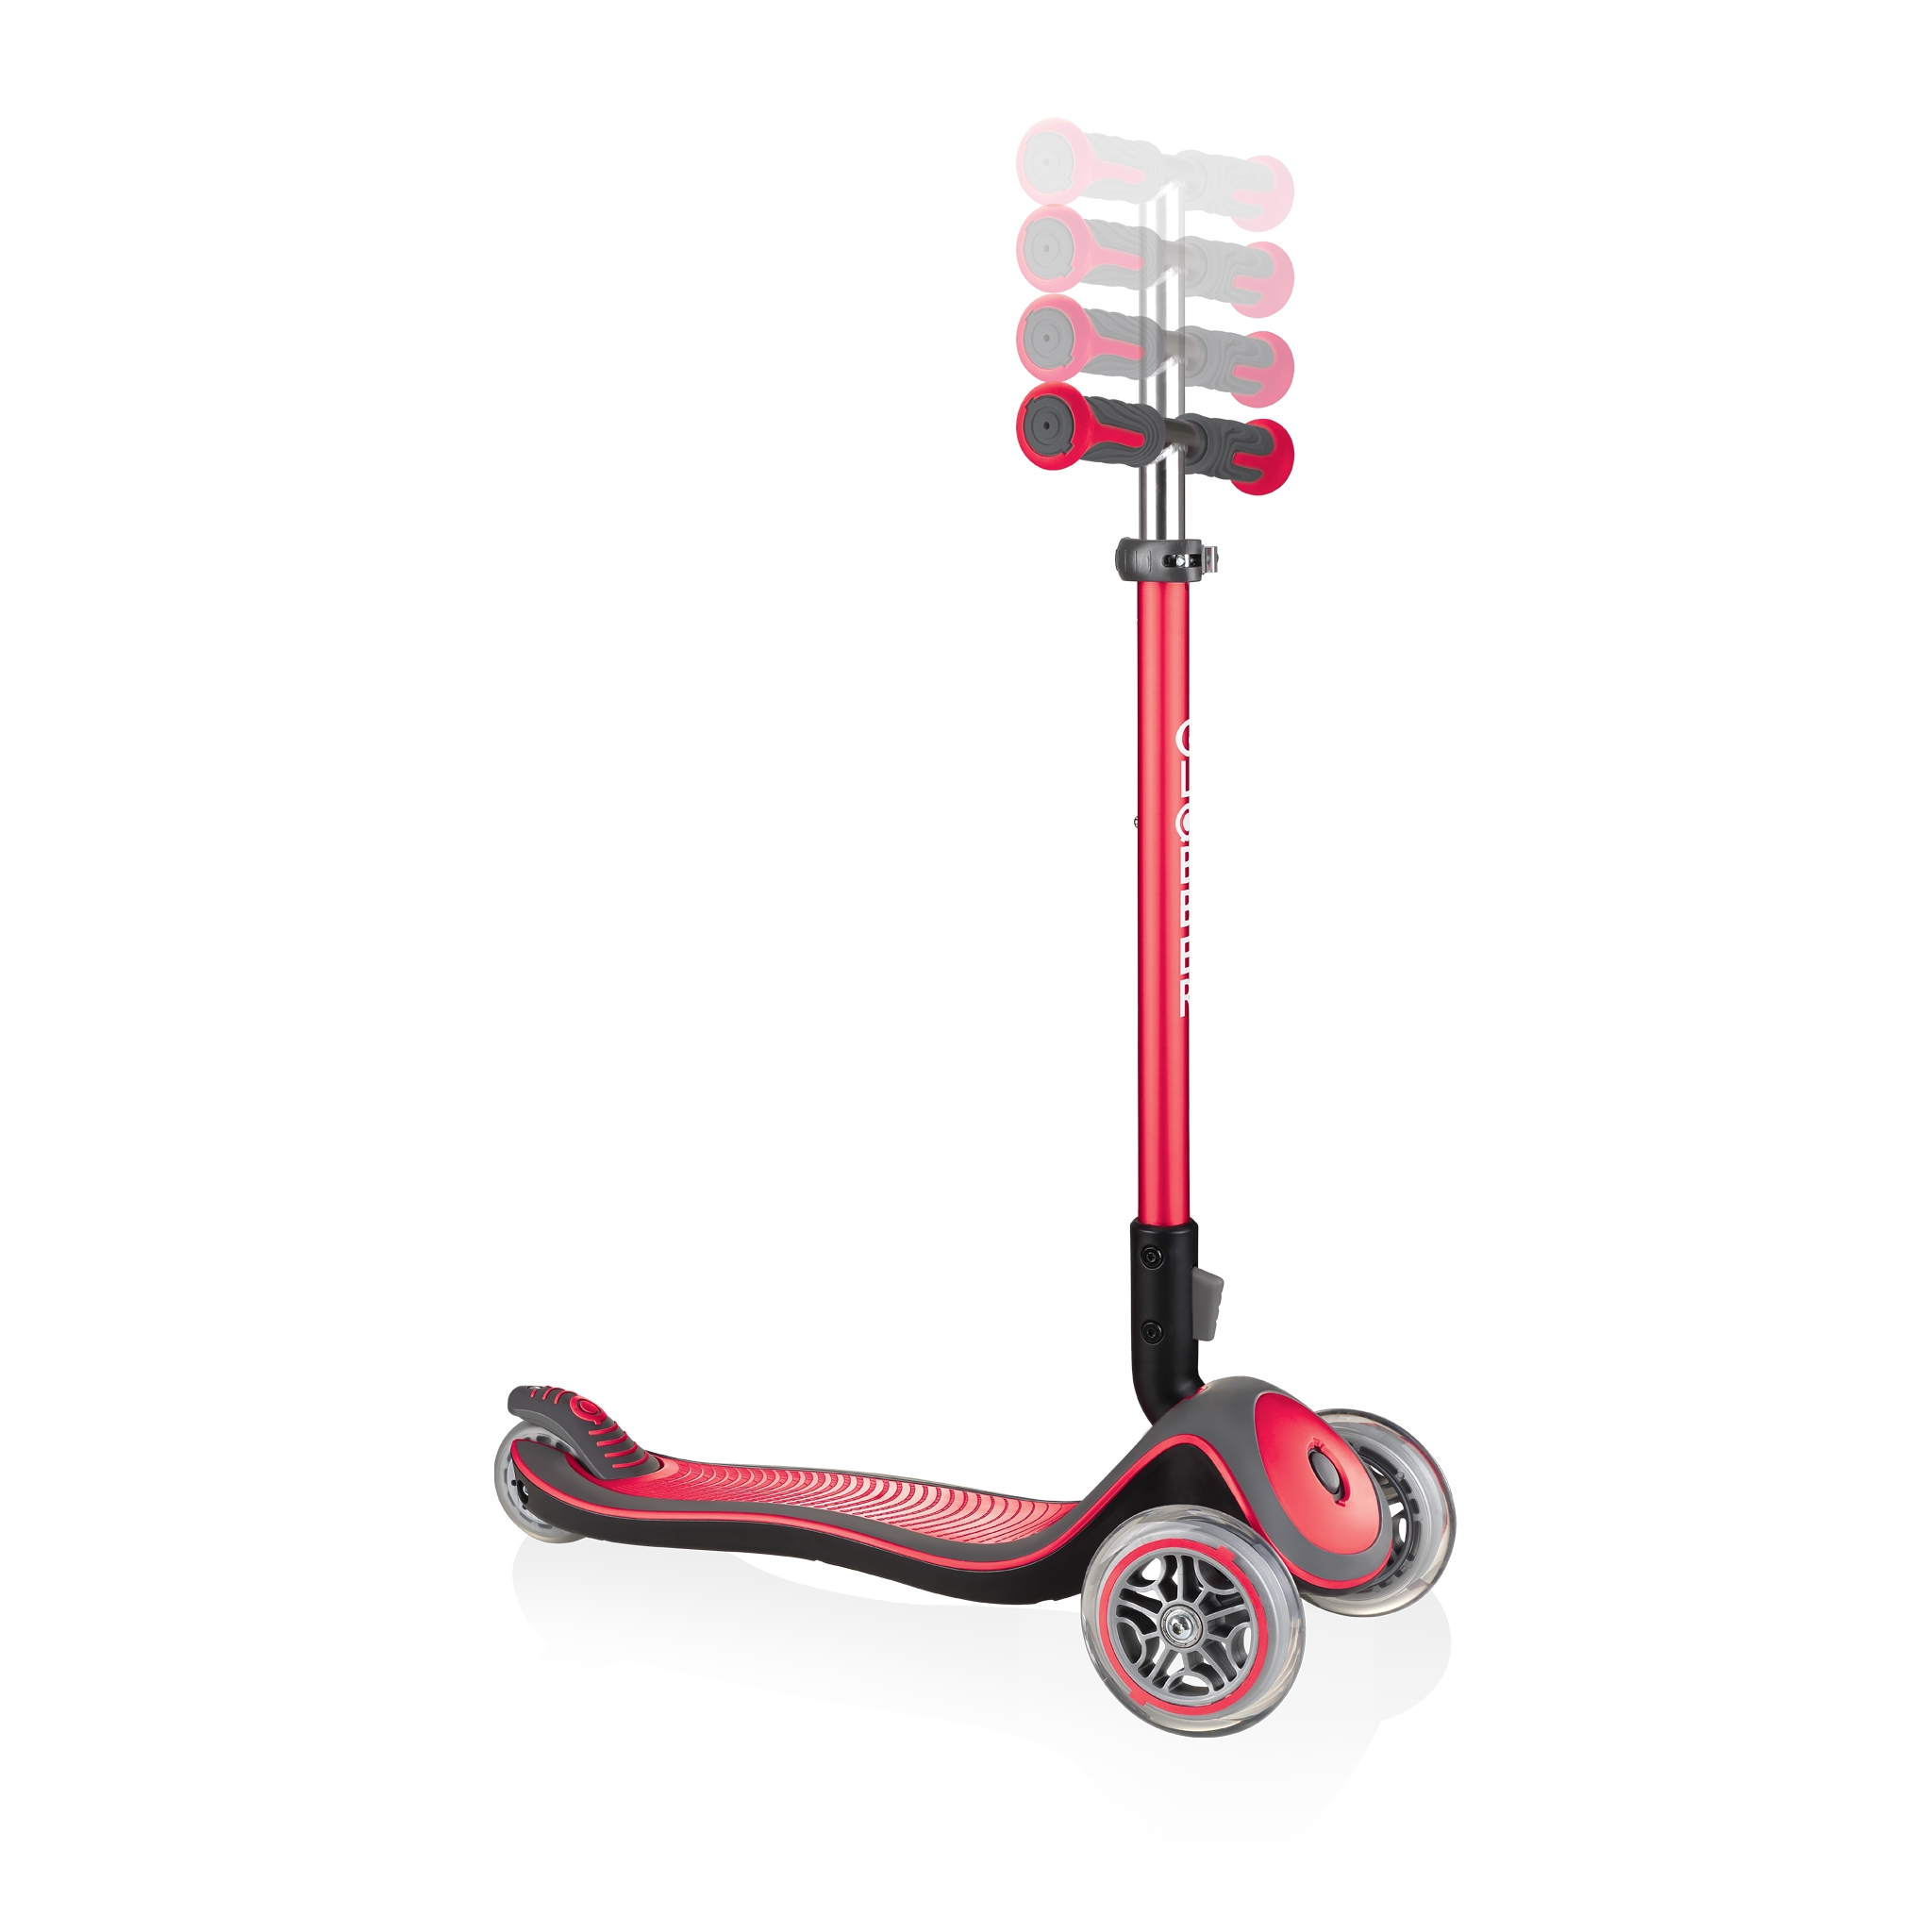 Globber-ELITE-DELUXE-3-wheel-adjustable-scooter-for-kids-with-anodized-T-bar-new-red